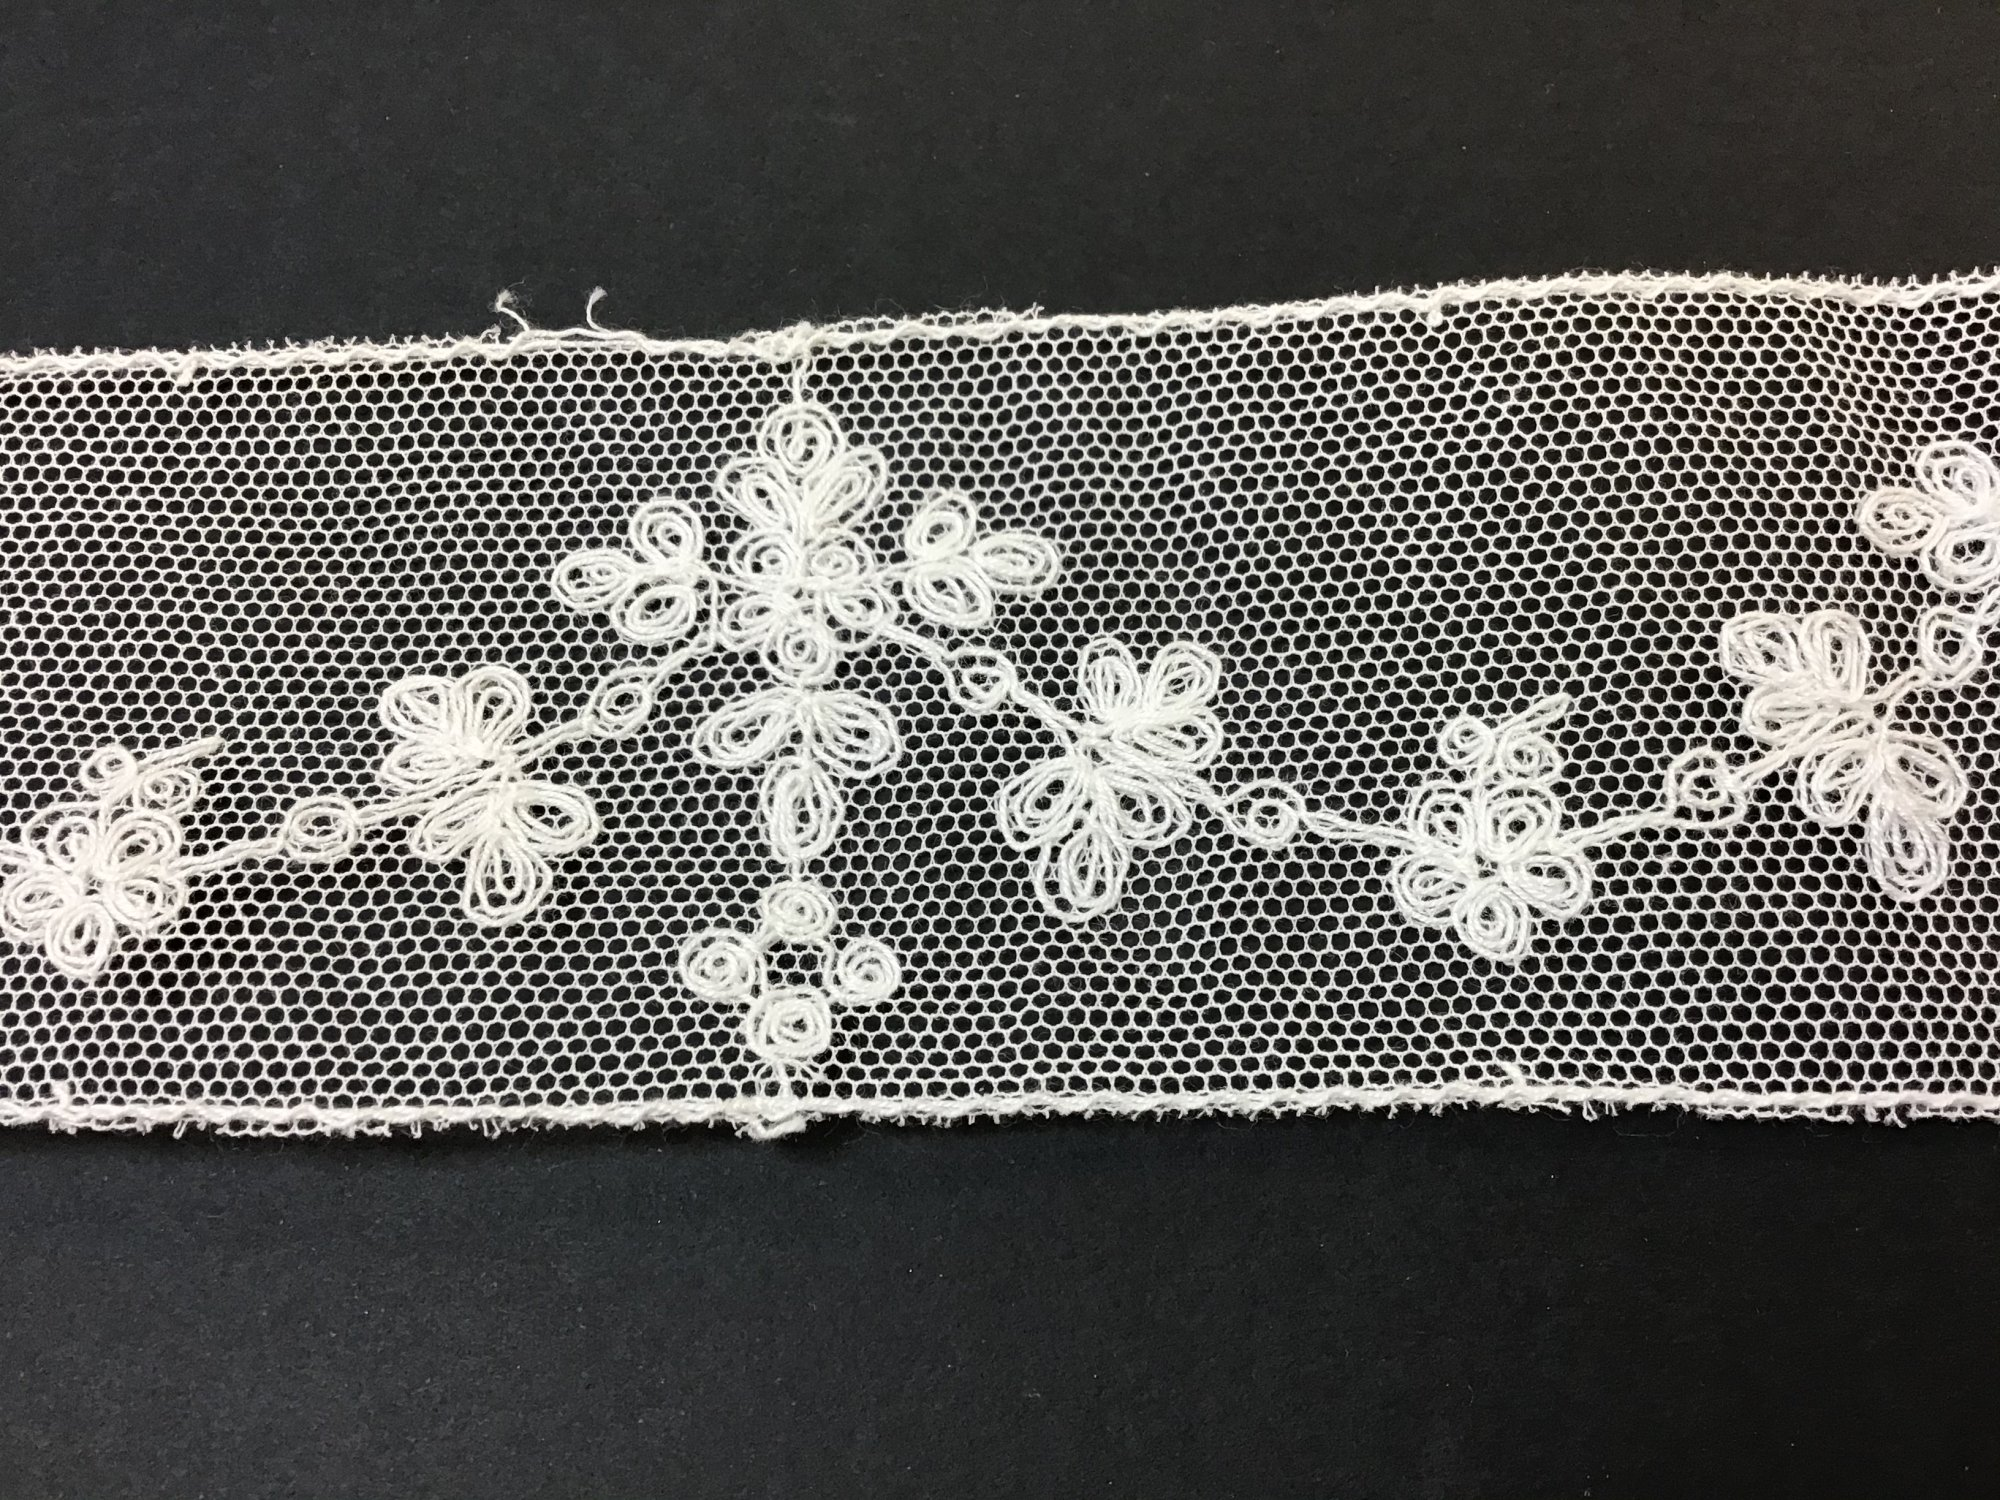 Netting Lace Insertion with Crosses 2 inch Soft White 1972